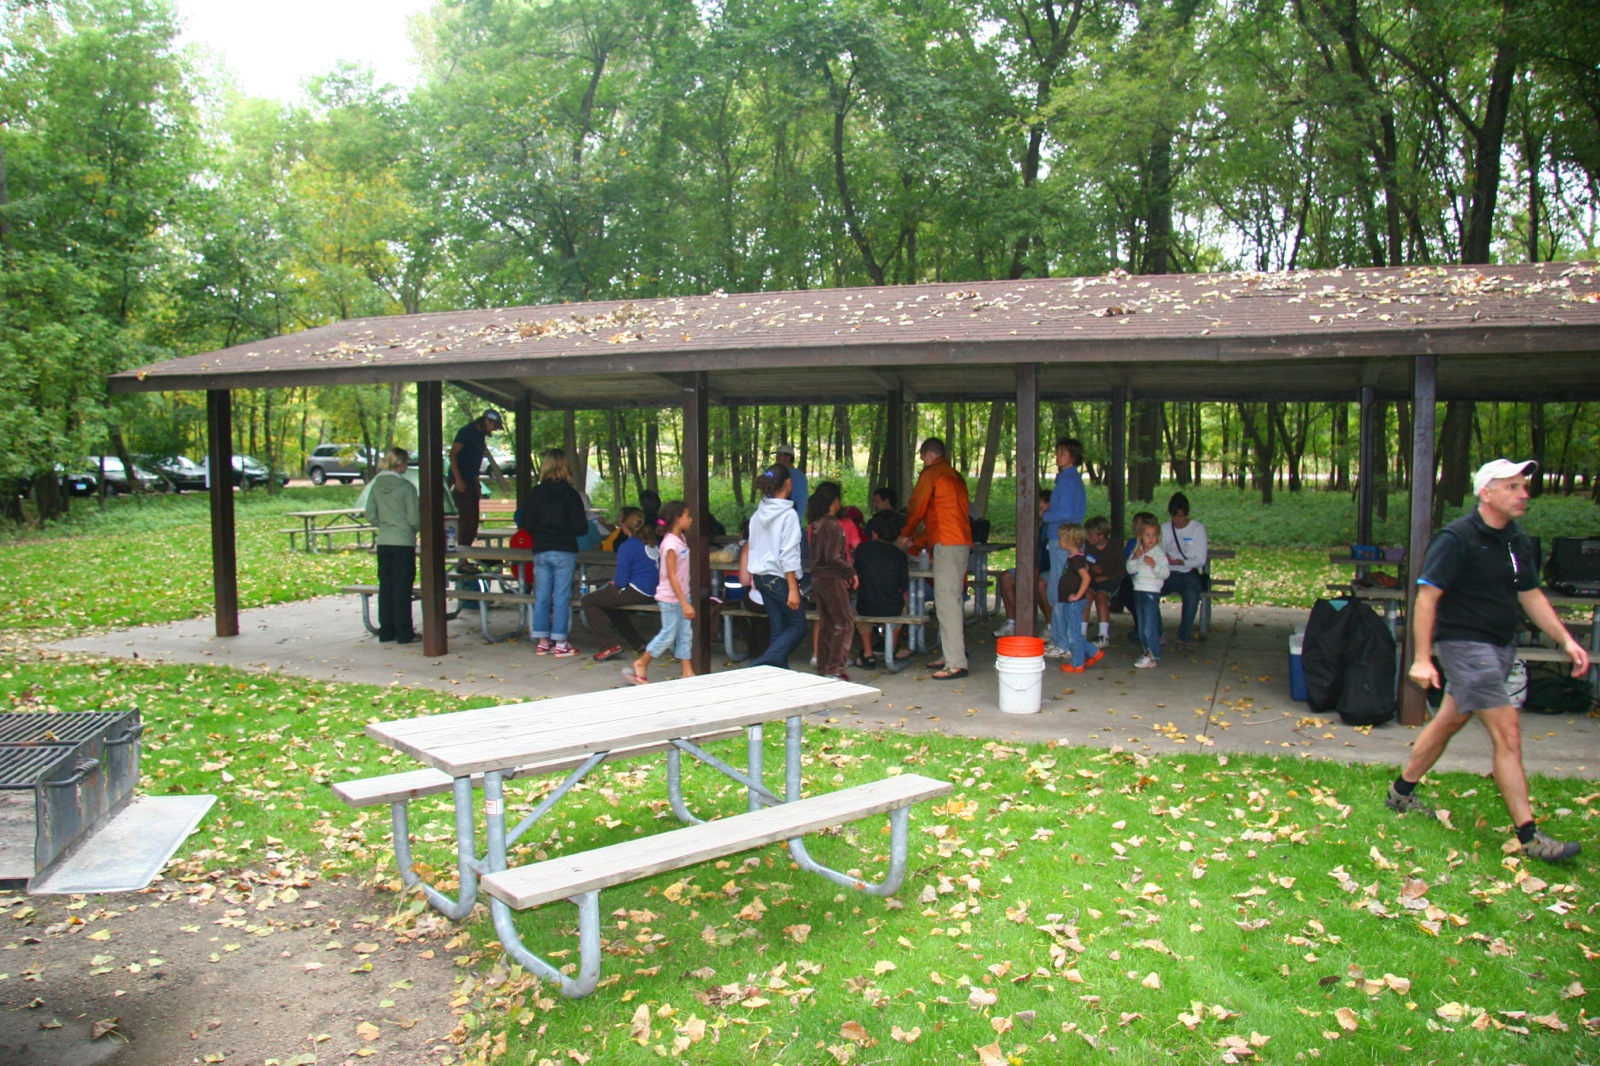 Participants gather under the pavilion at Fort Snelling to make lunch.